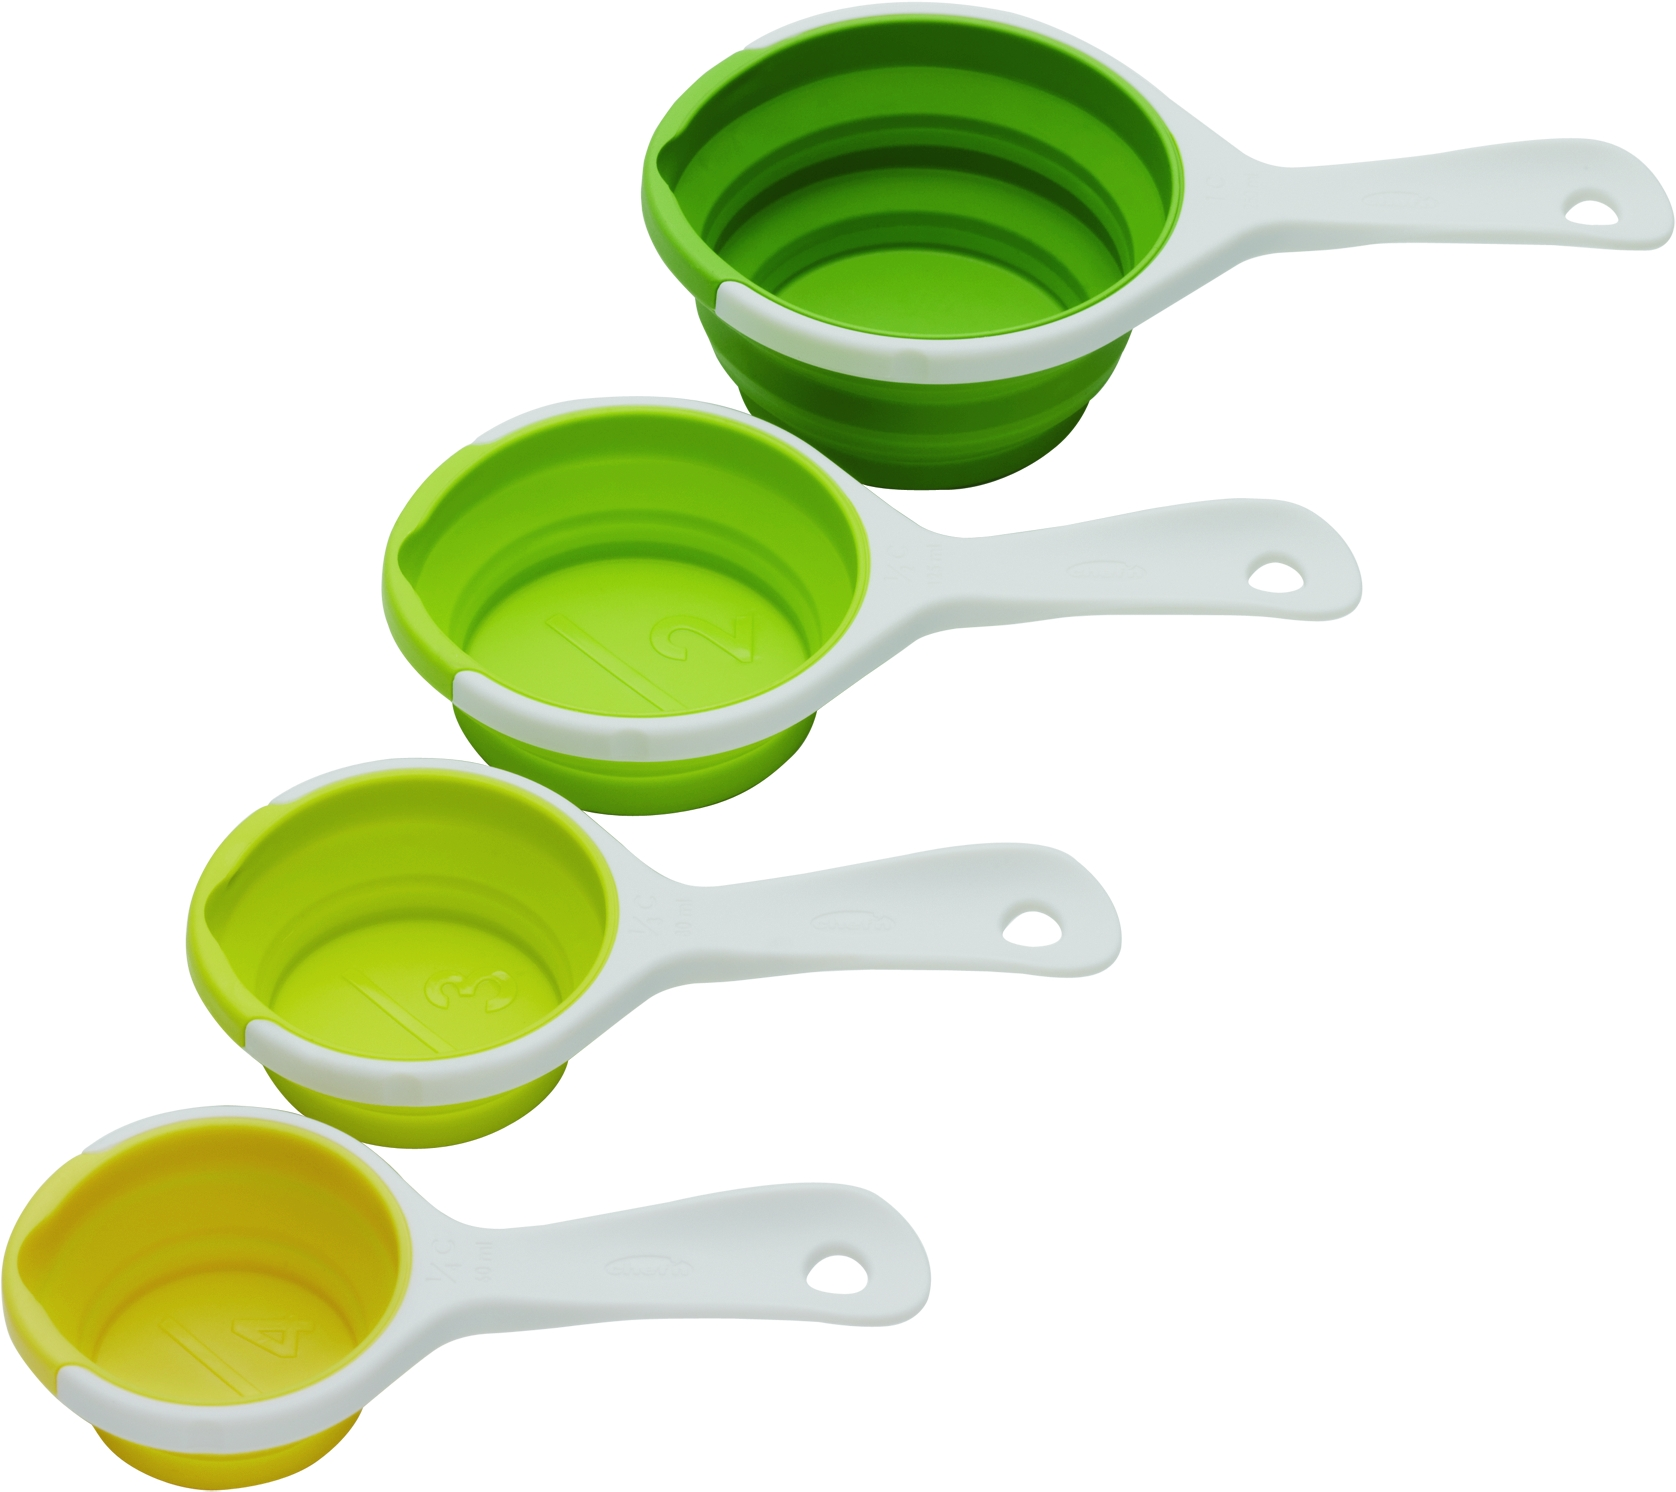 Chef'n Sleekstor Collapsible Pinch and Pour Measuring Cup Set in Green Multi Colors